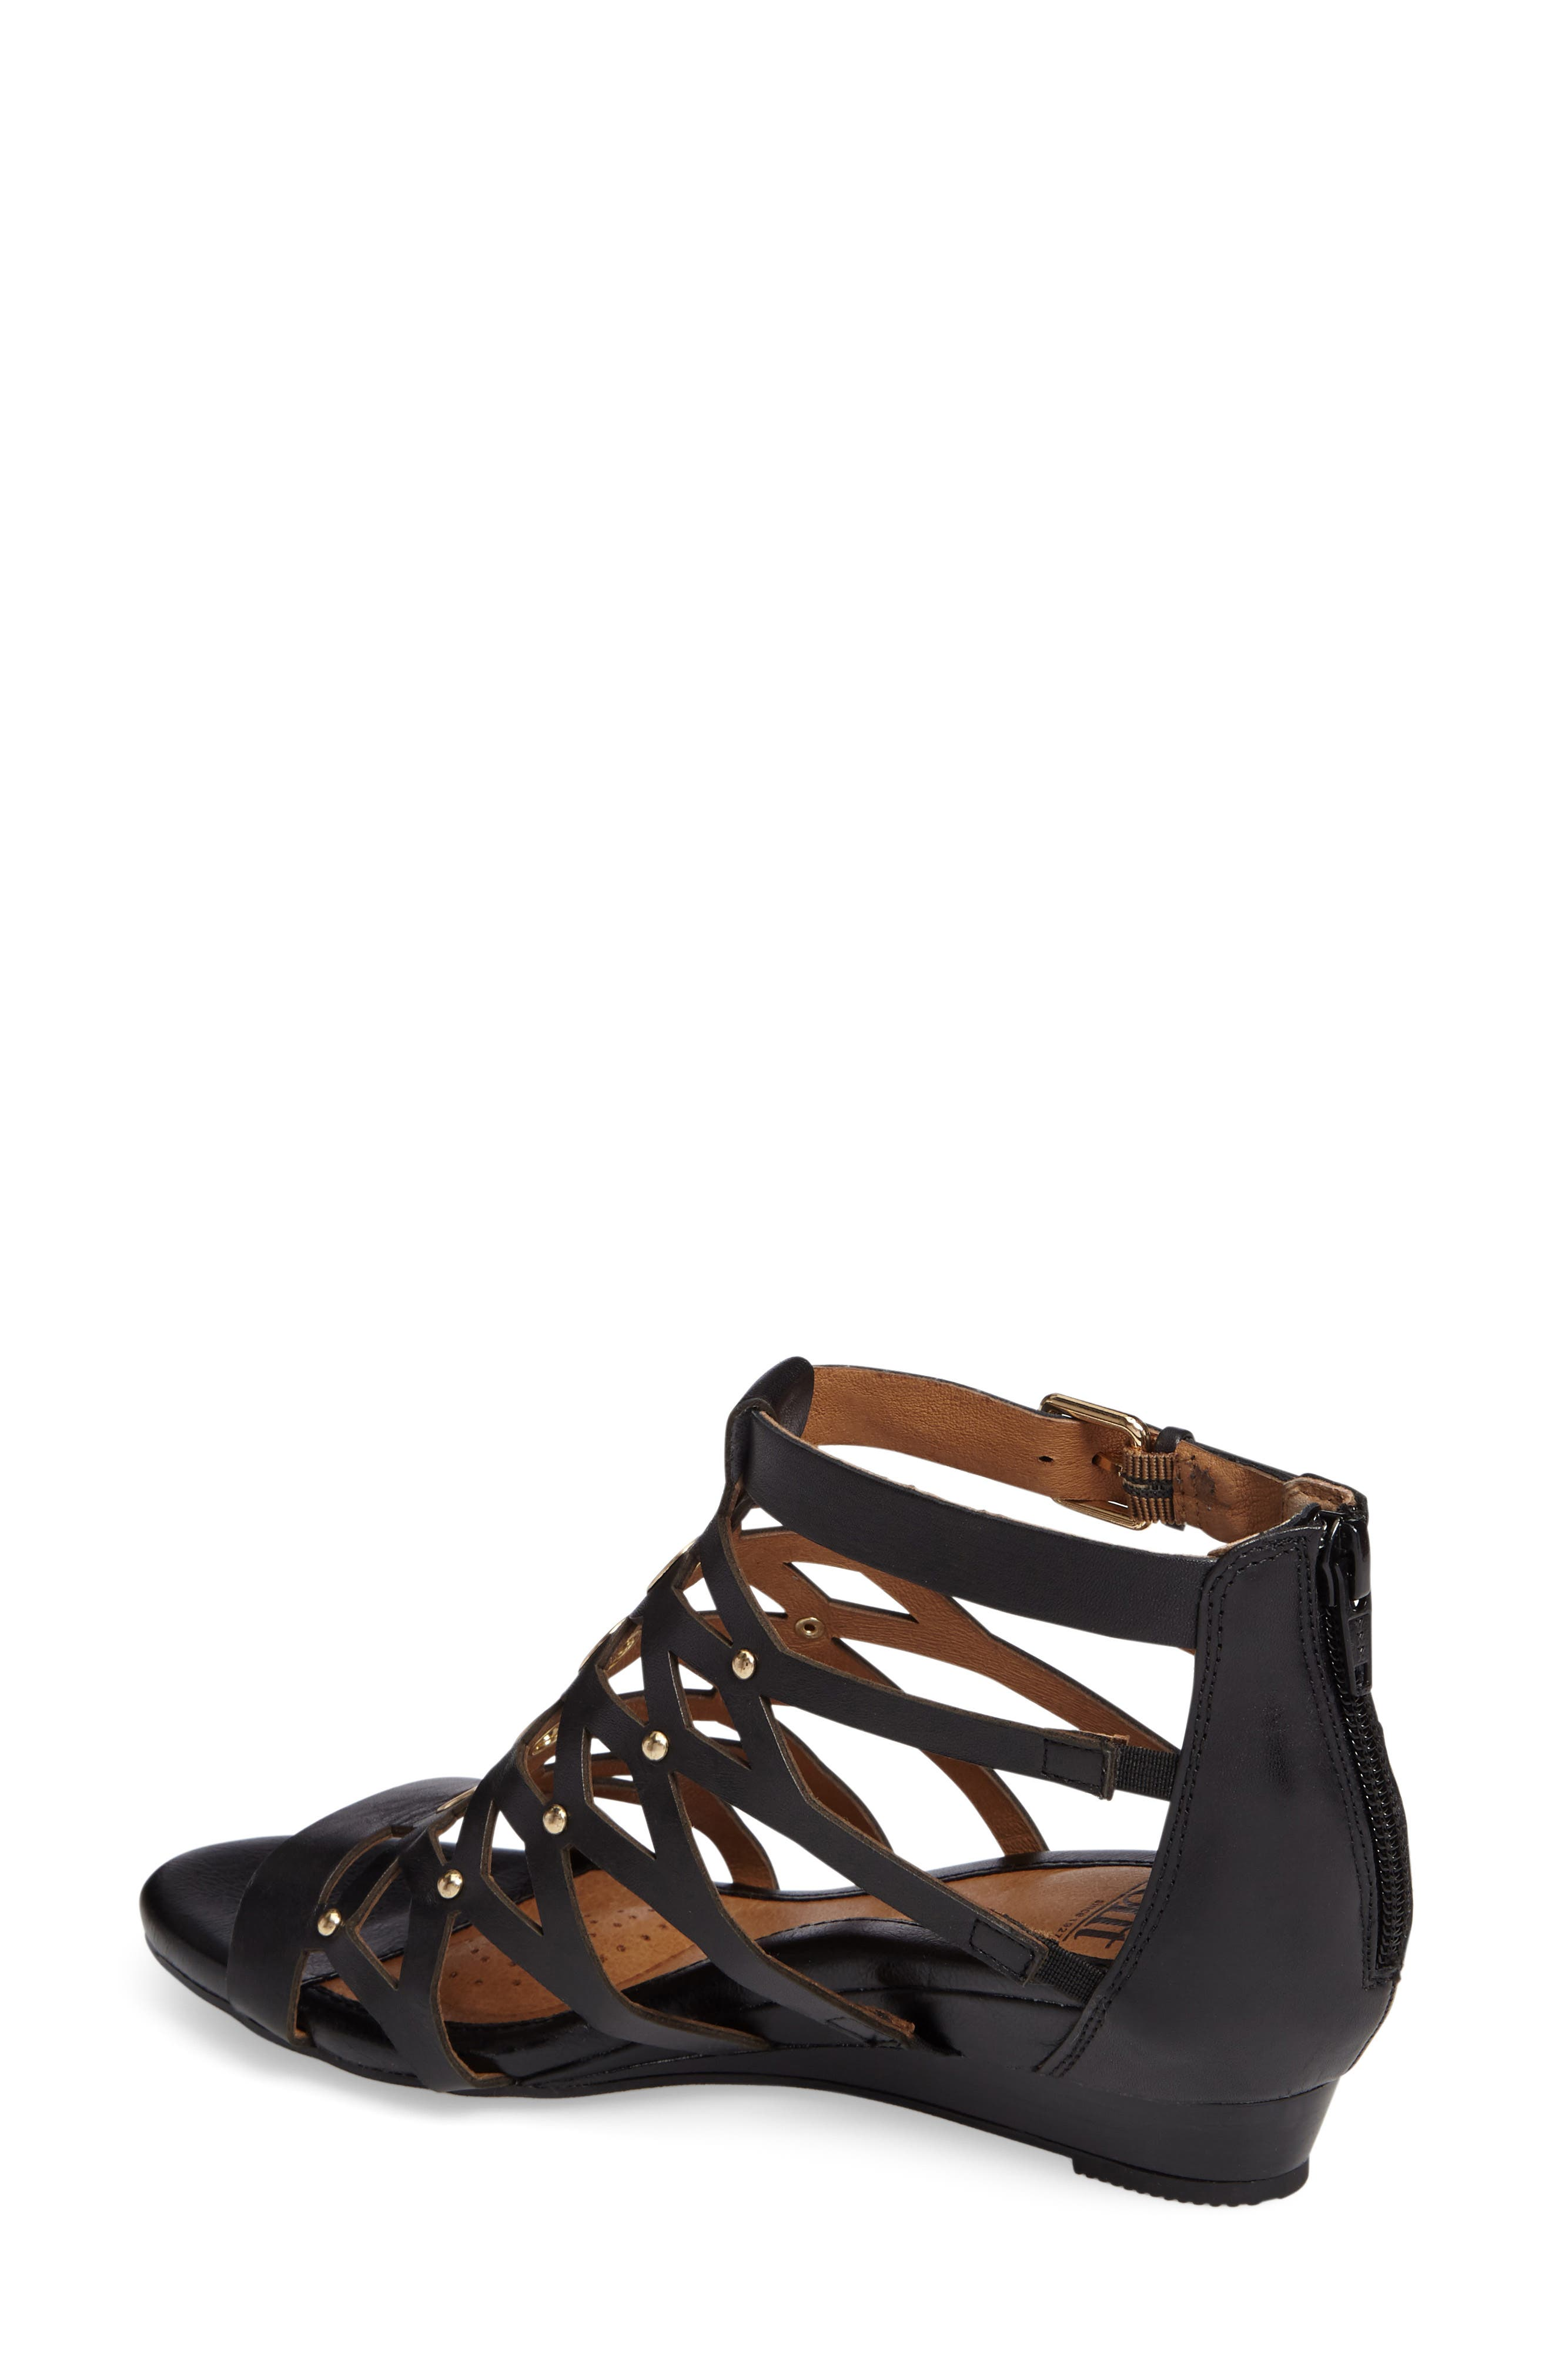 Rosalyn Wedge Sandal,                             Alternate thumbnail 2, color,                             001